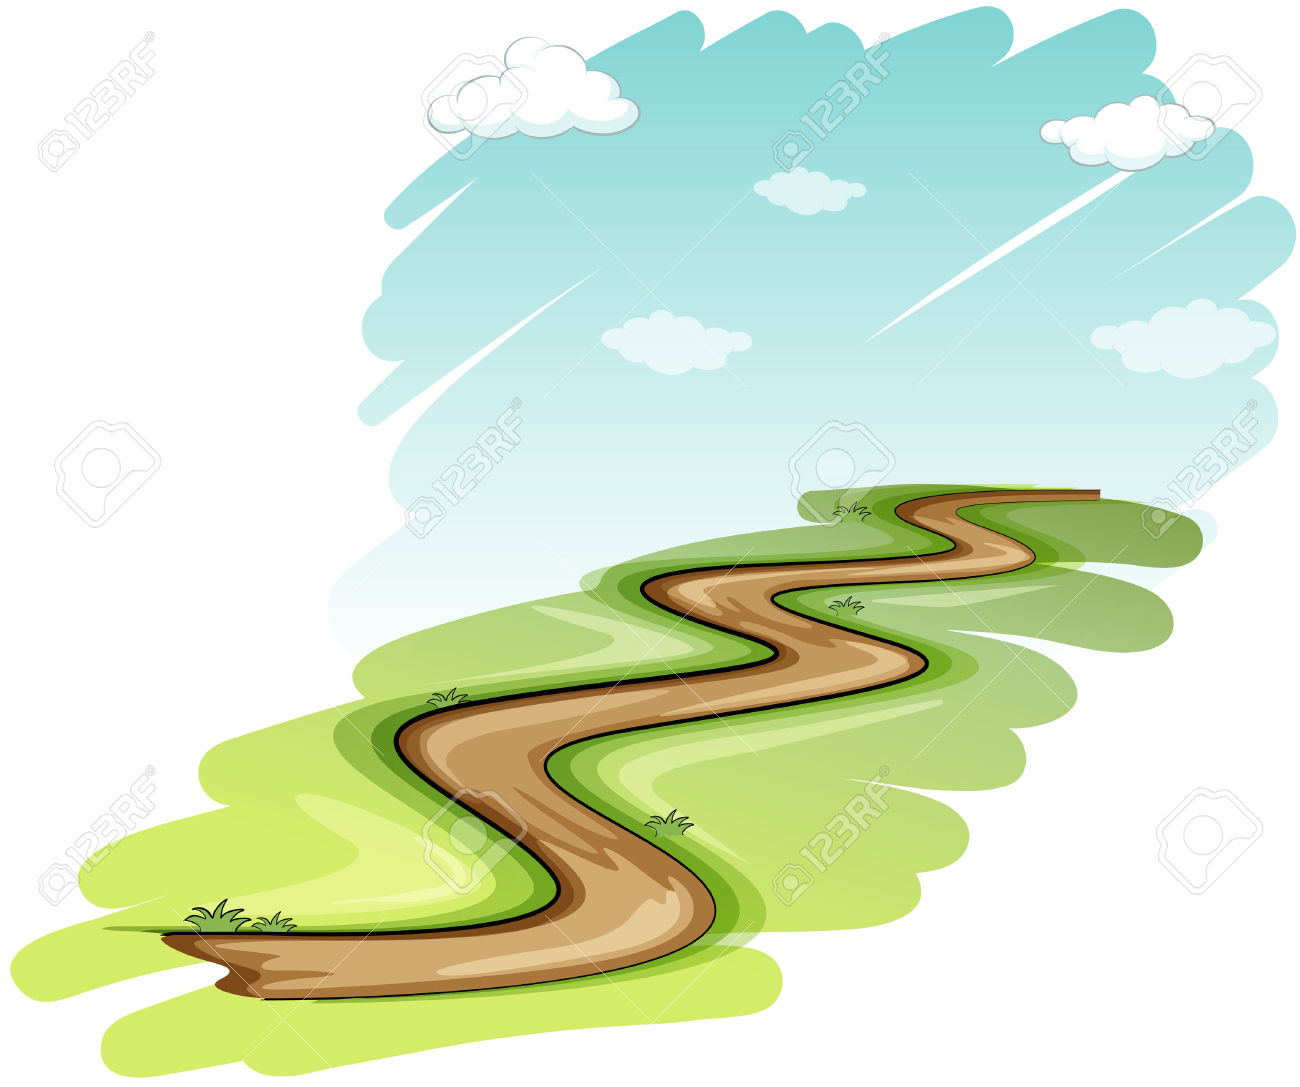 Free download best on. Pathway clipart direction